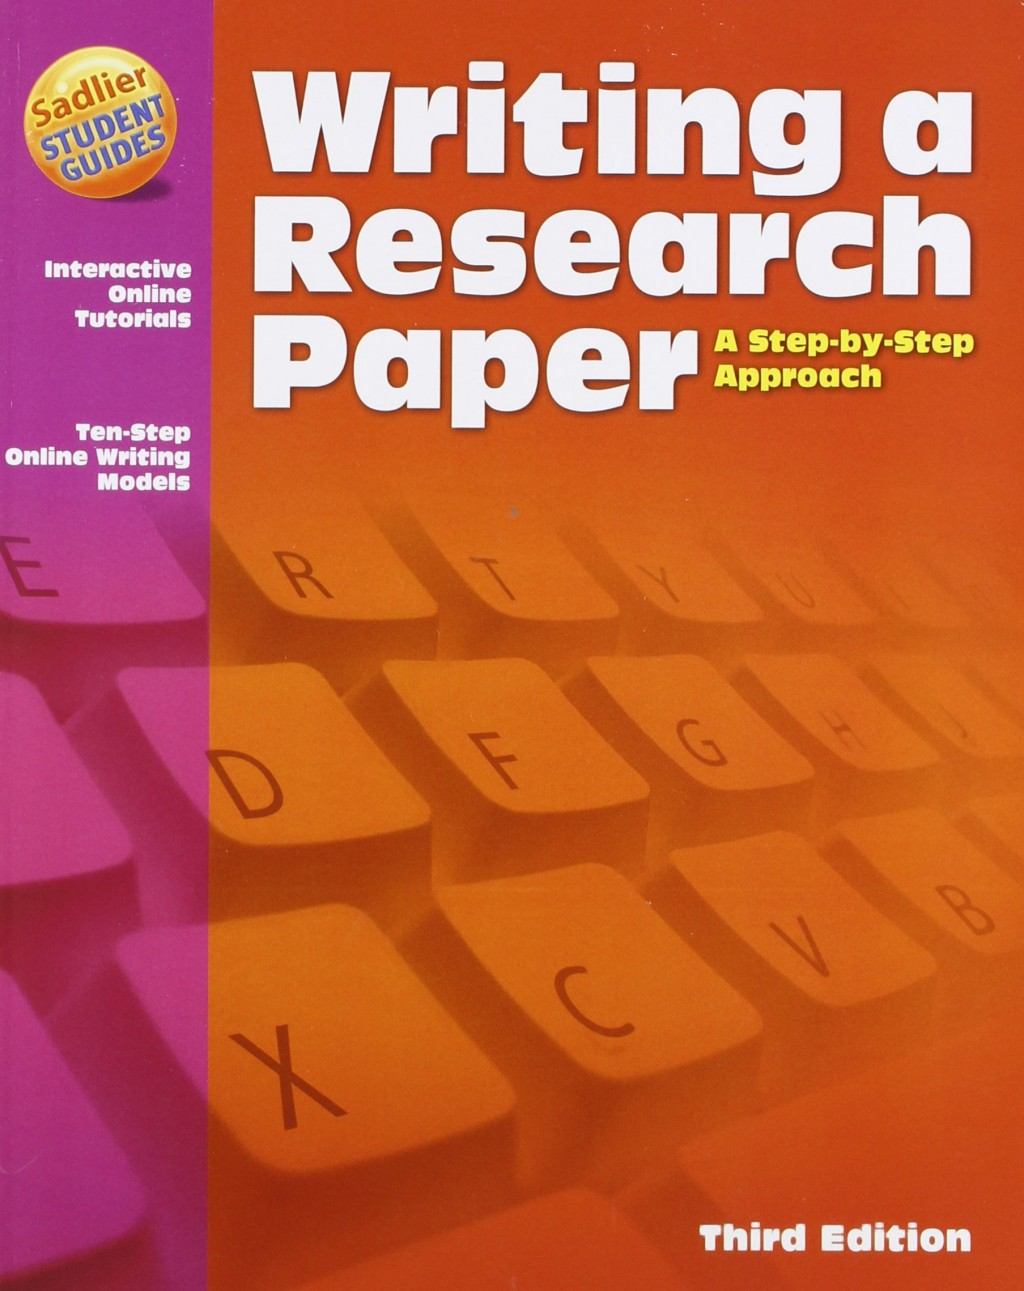 011 81uqfpthpml Help With Writing Researchs Fantastic Research Papers Assistance A Paper Large